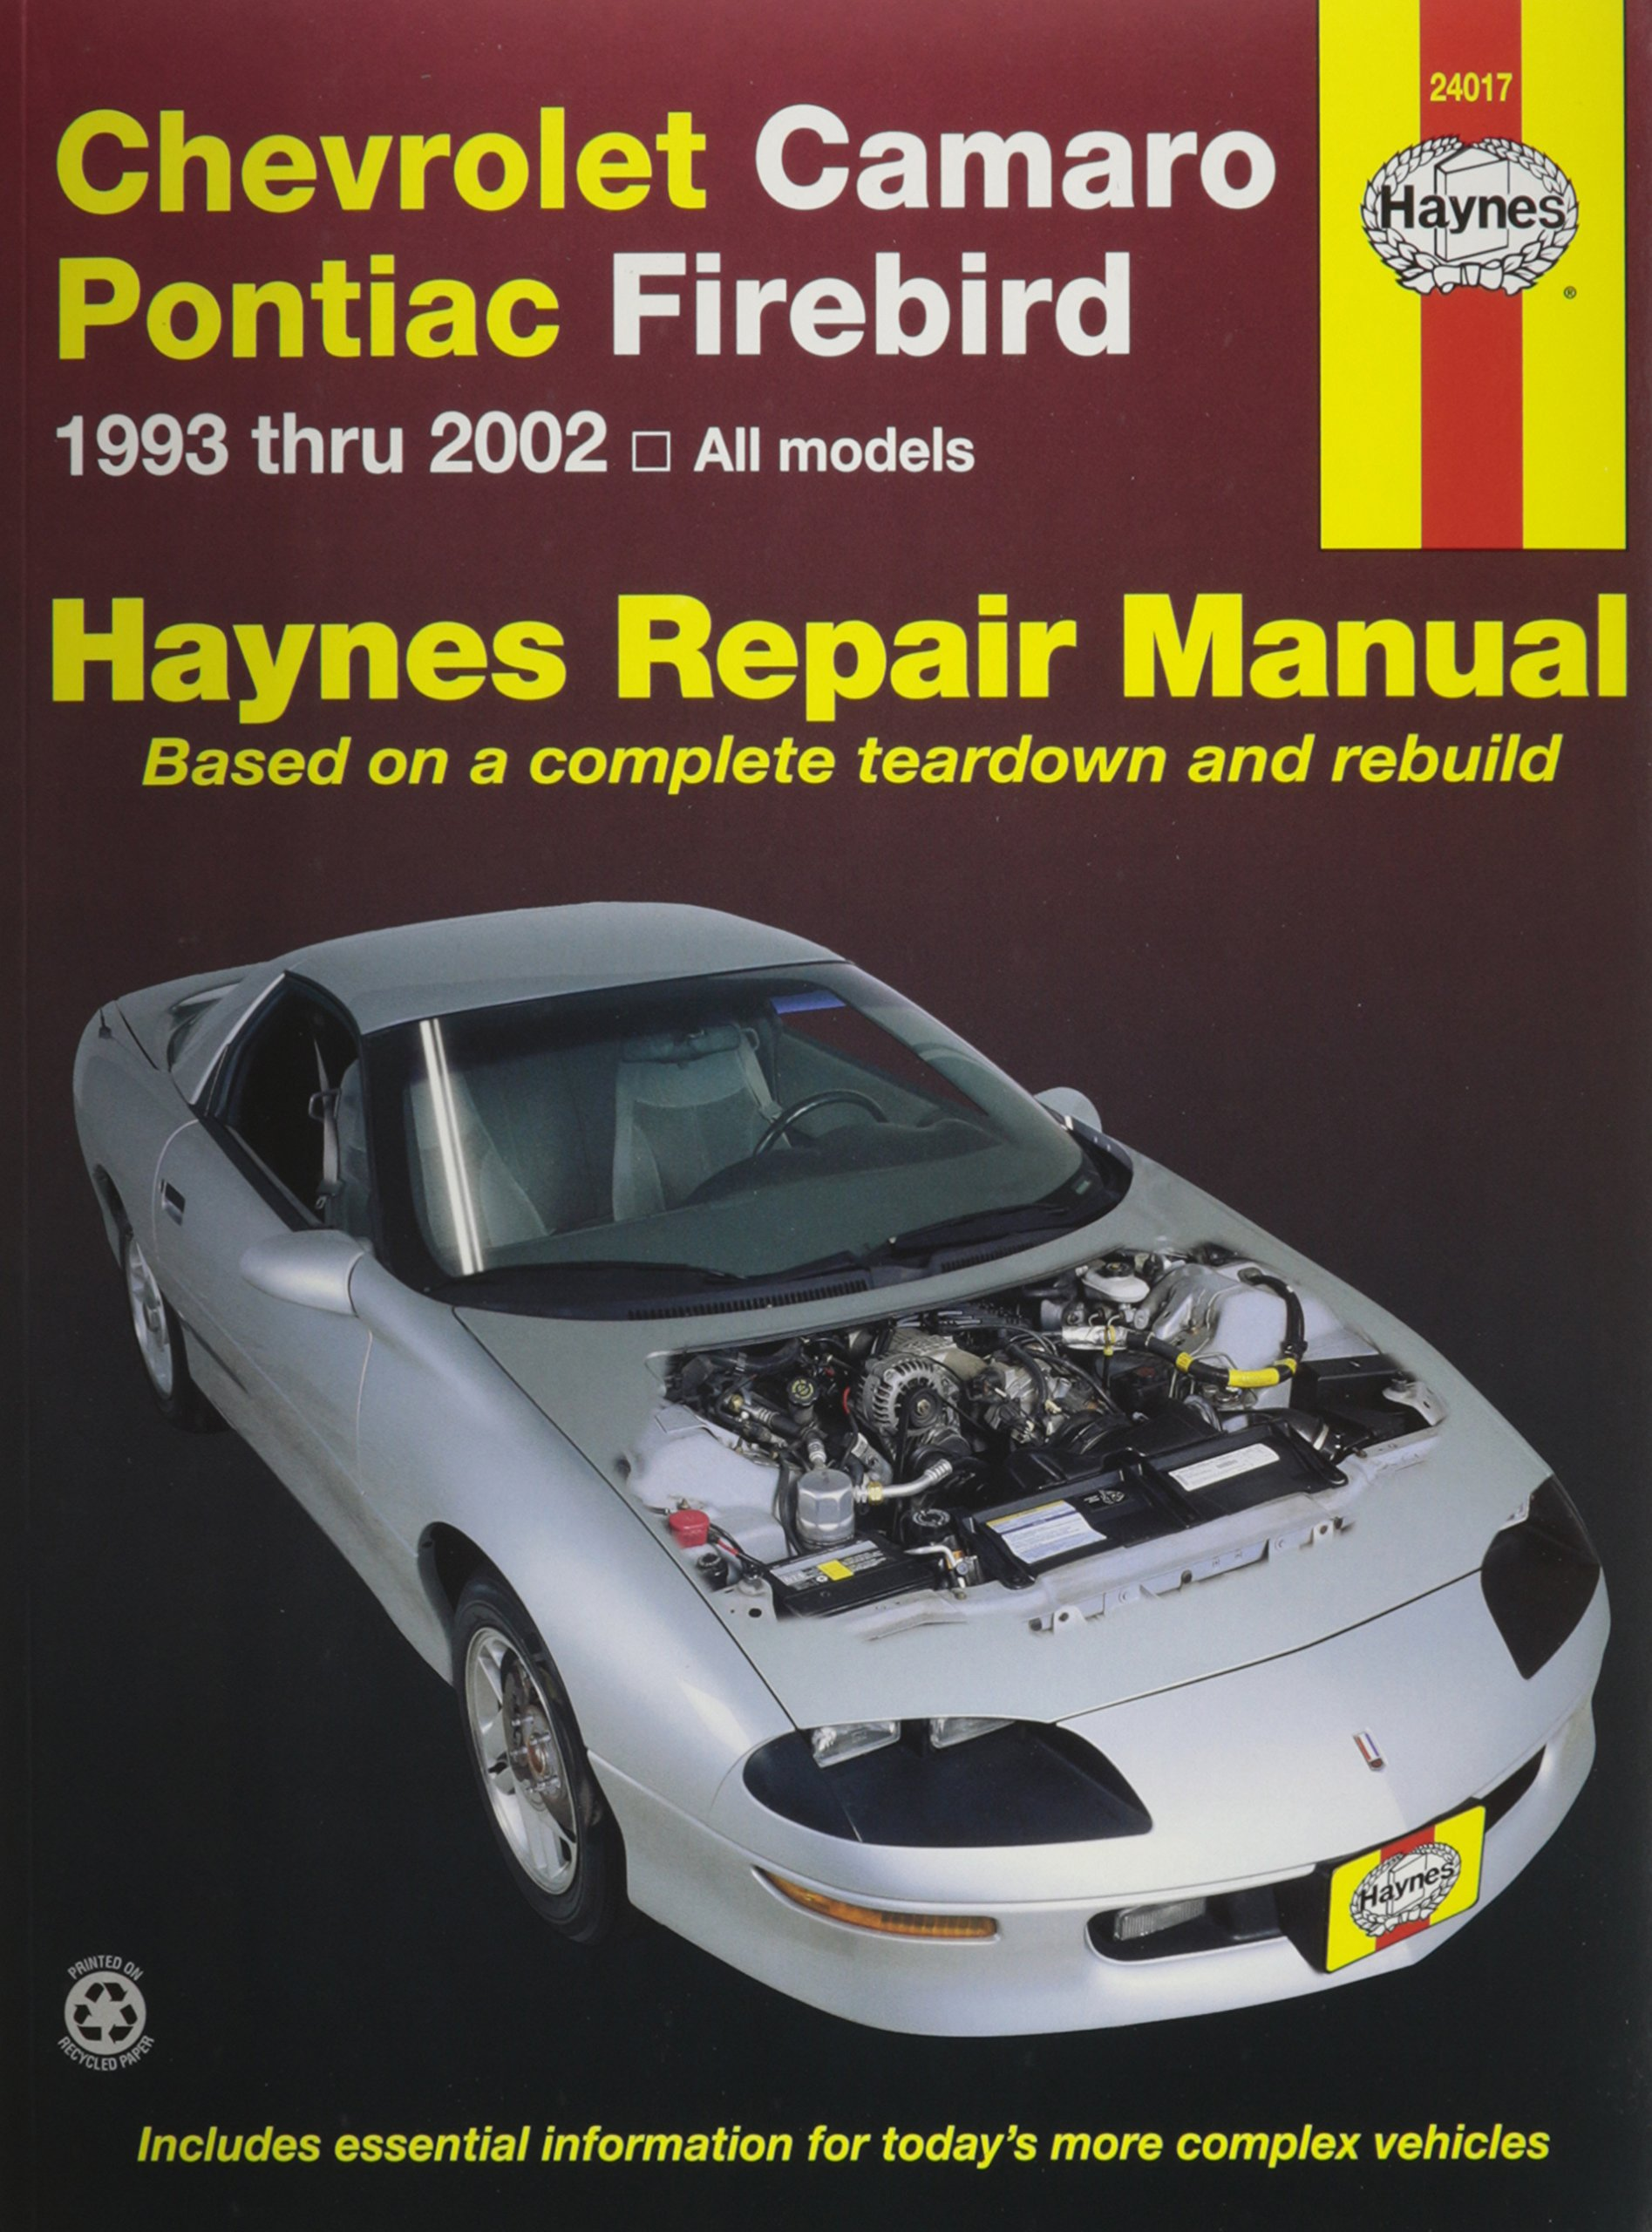 amazon com haynes repair manual for camaro firebird number 24017 rh amazon com Levon Helm Wiring- Diagram